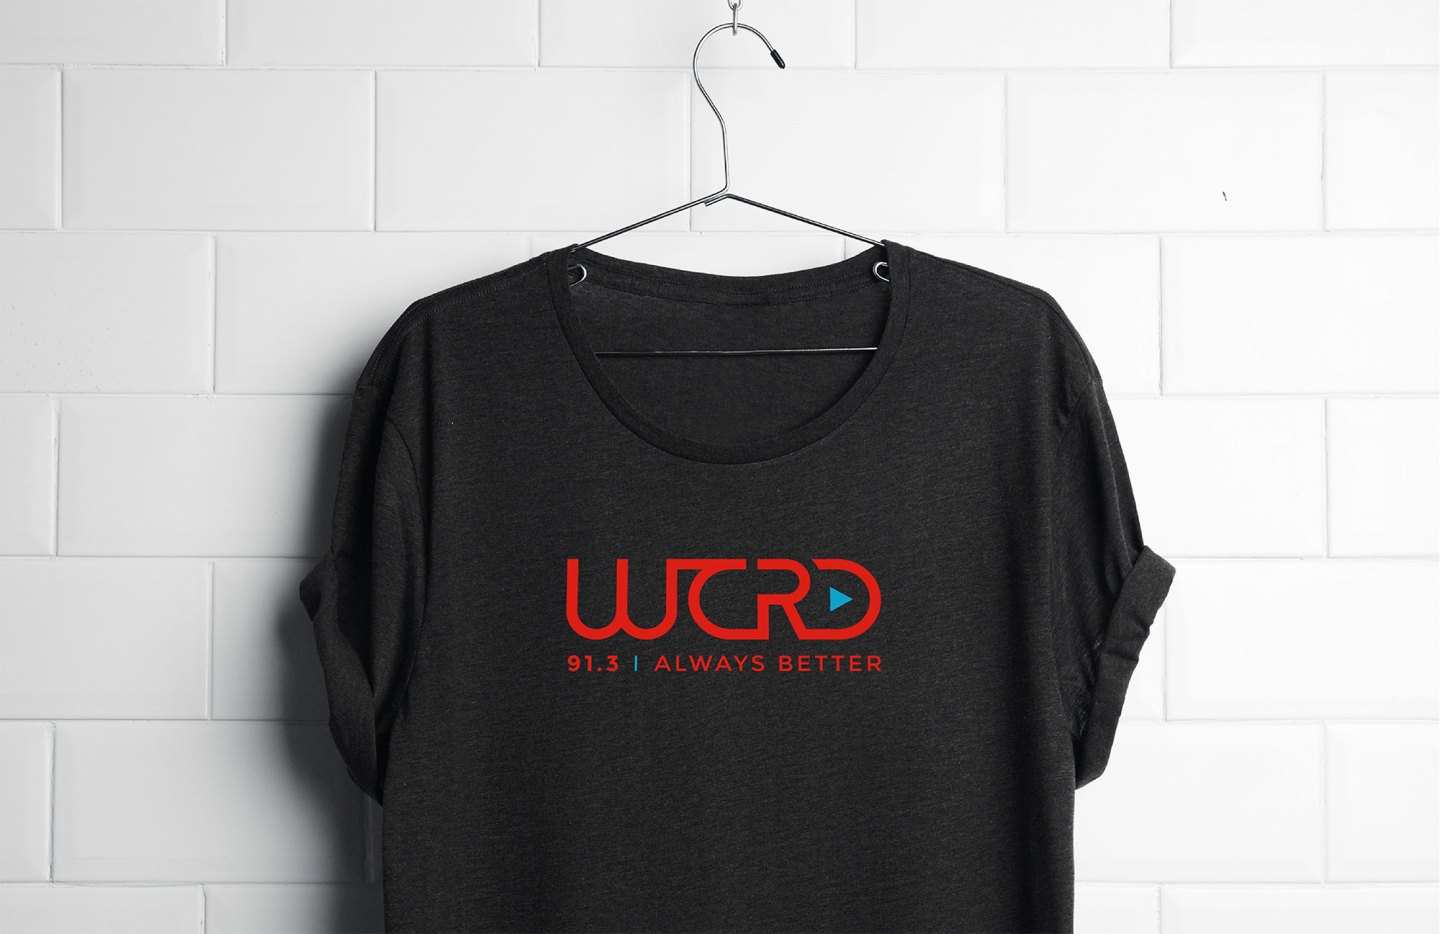 The WCRD primary logo lockup on a gray t-shirt